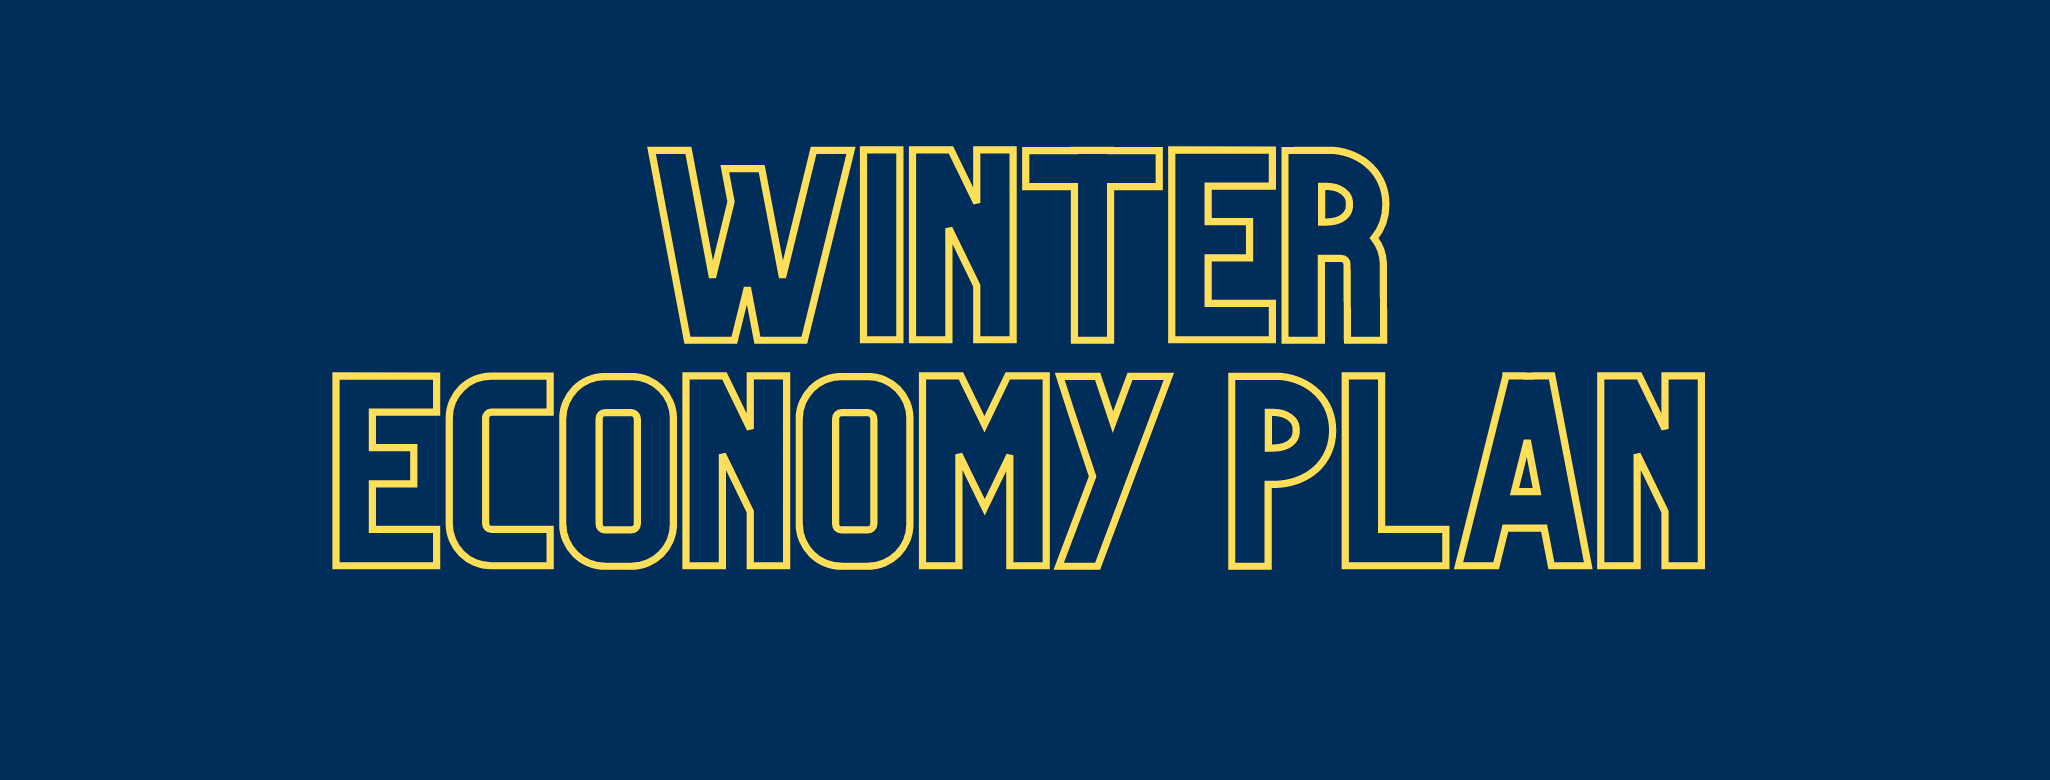 Accountants in Altrincham South Manchester Winter Economy Plan 2020